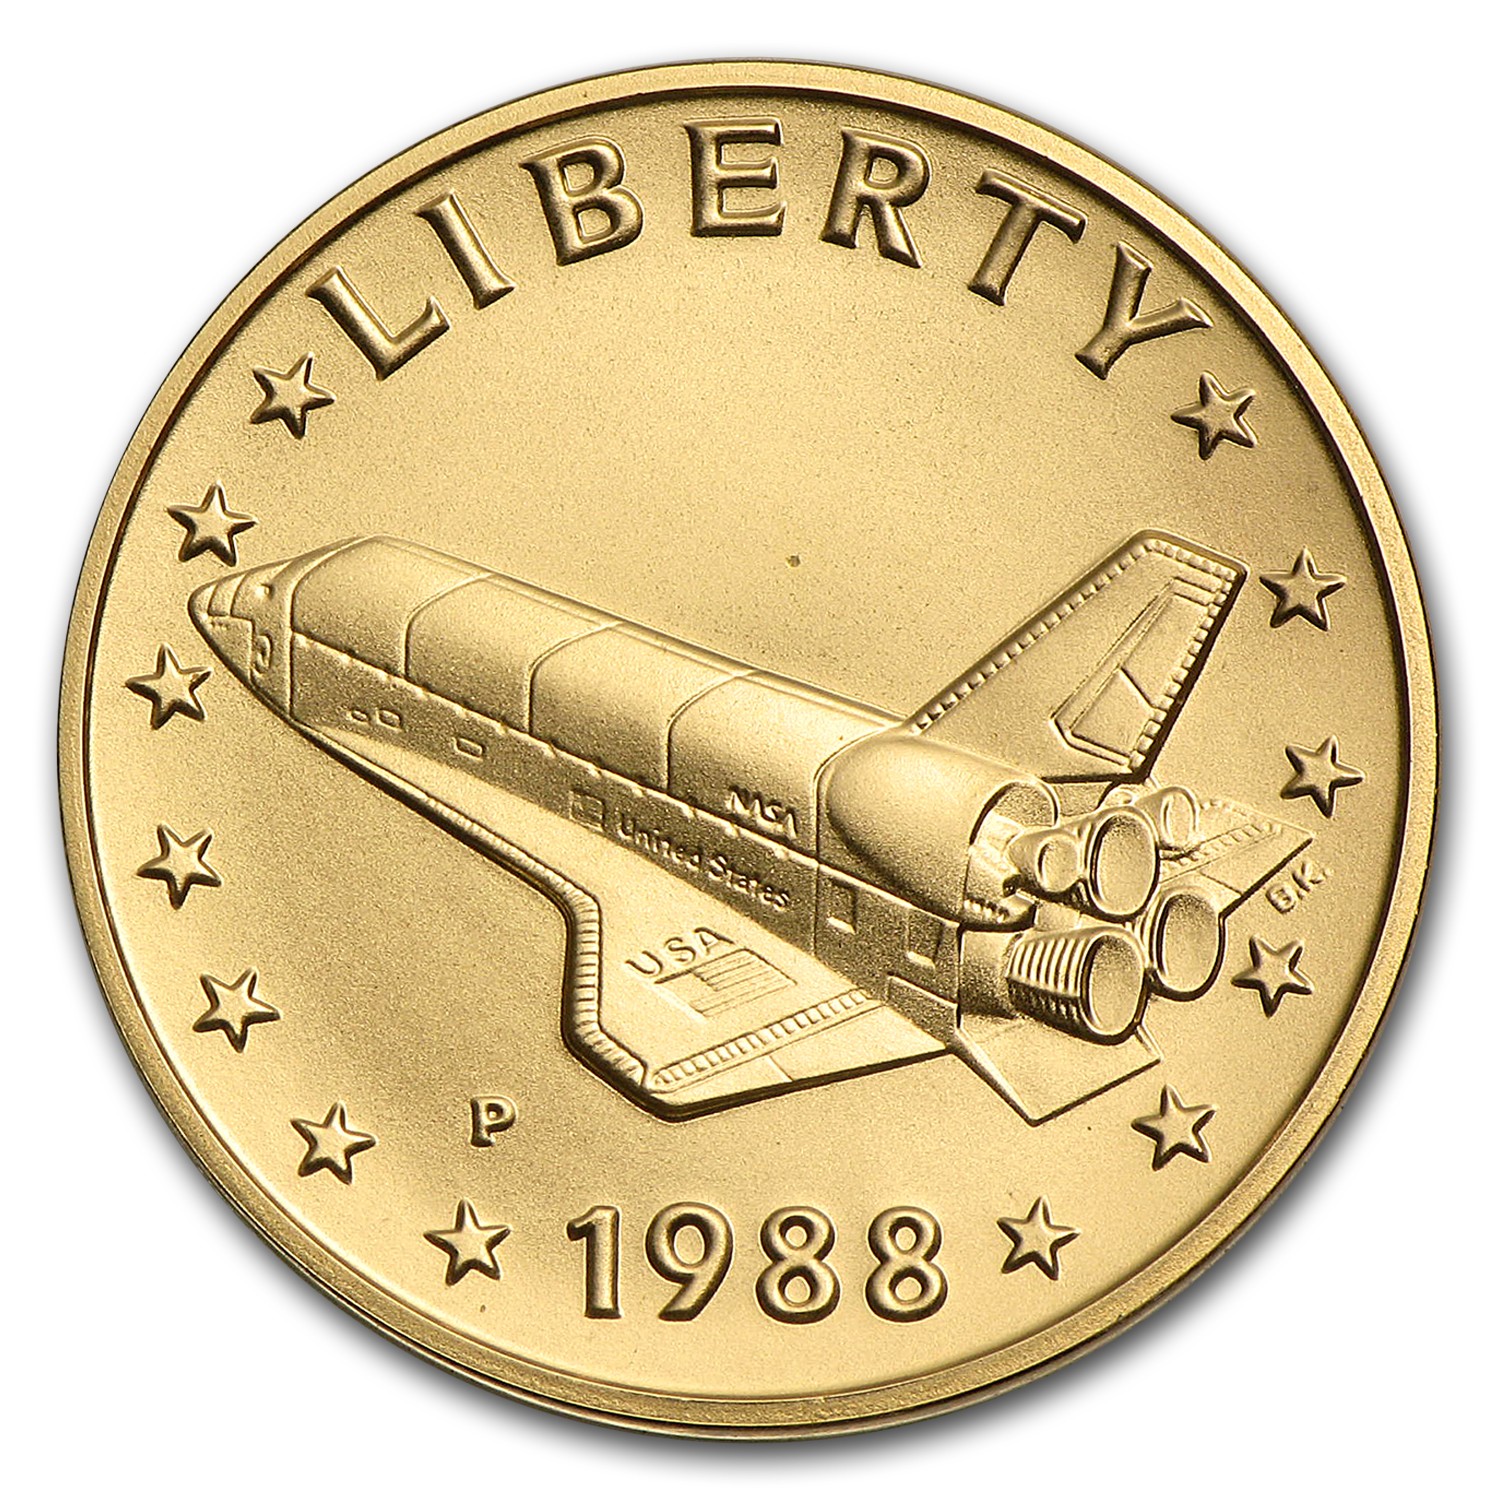 .2419 oz Gold Rounds - America in Space Young Astronaut Medal